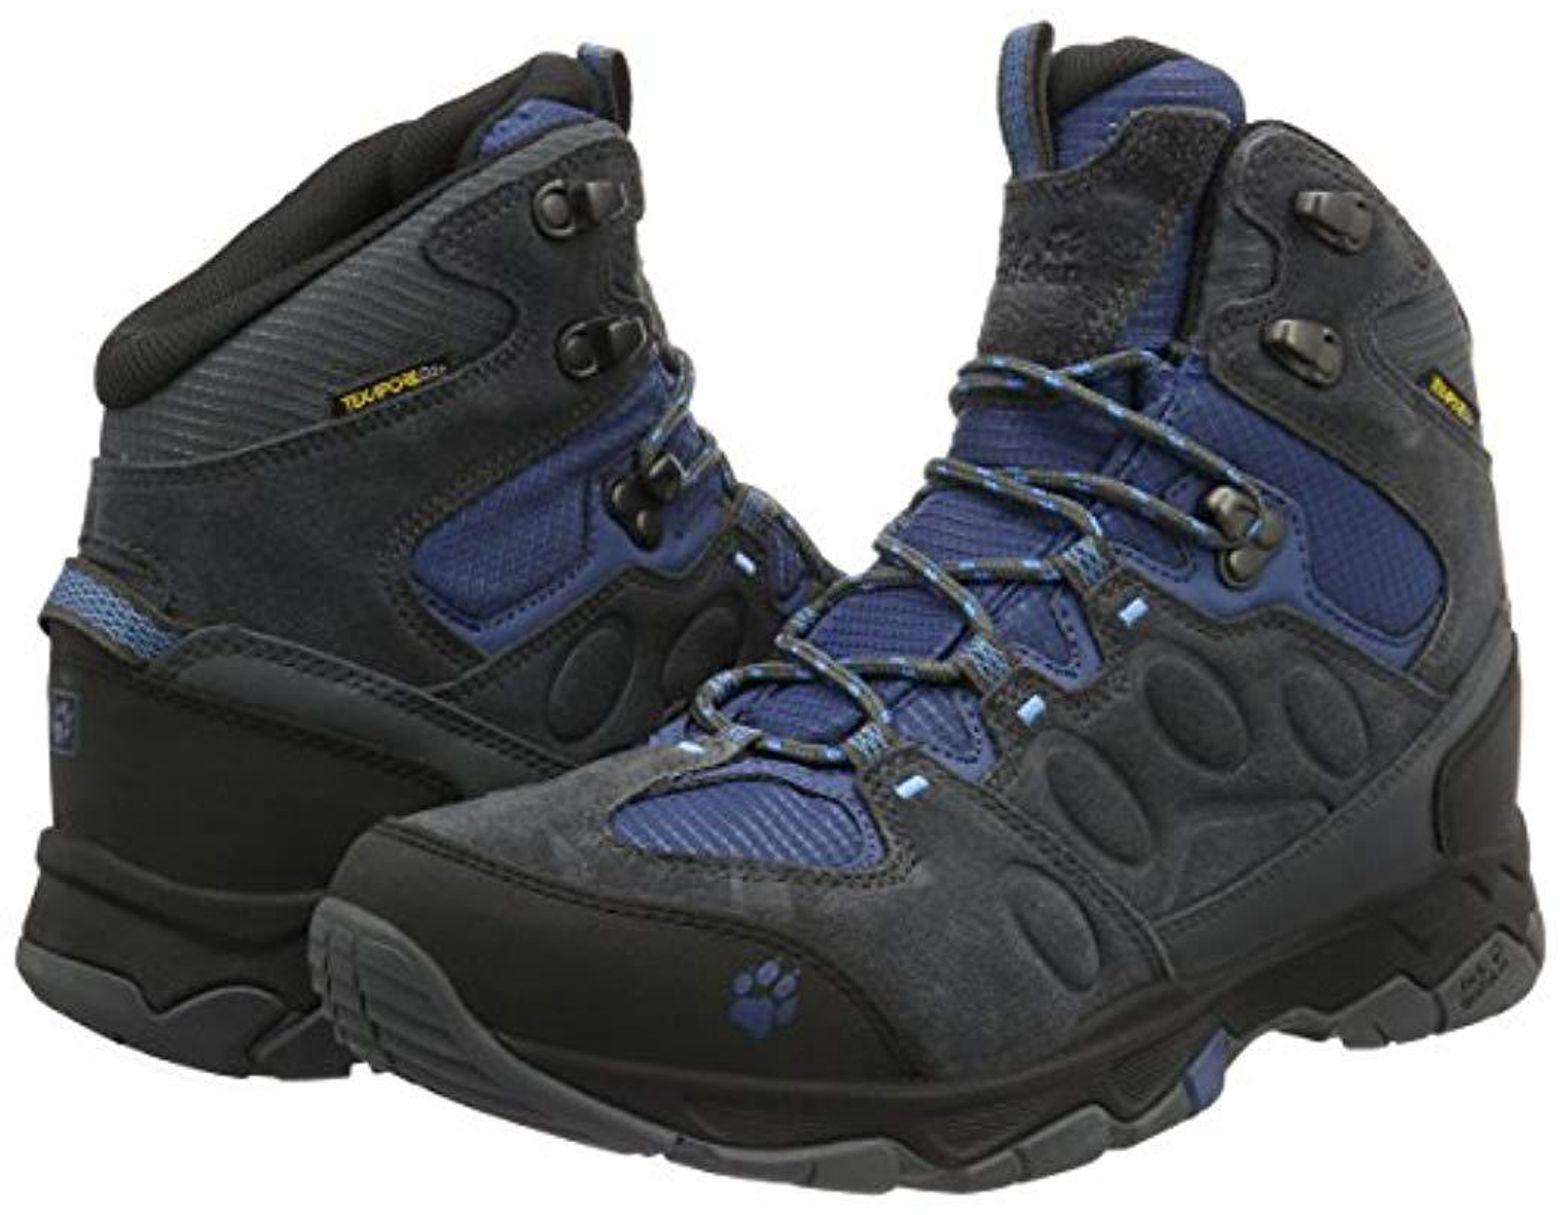 87be8f740b6 Men's Blue Mtn Attack 5 Texapore Mid M Hiking Boot